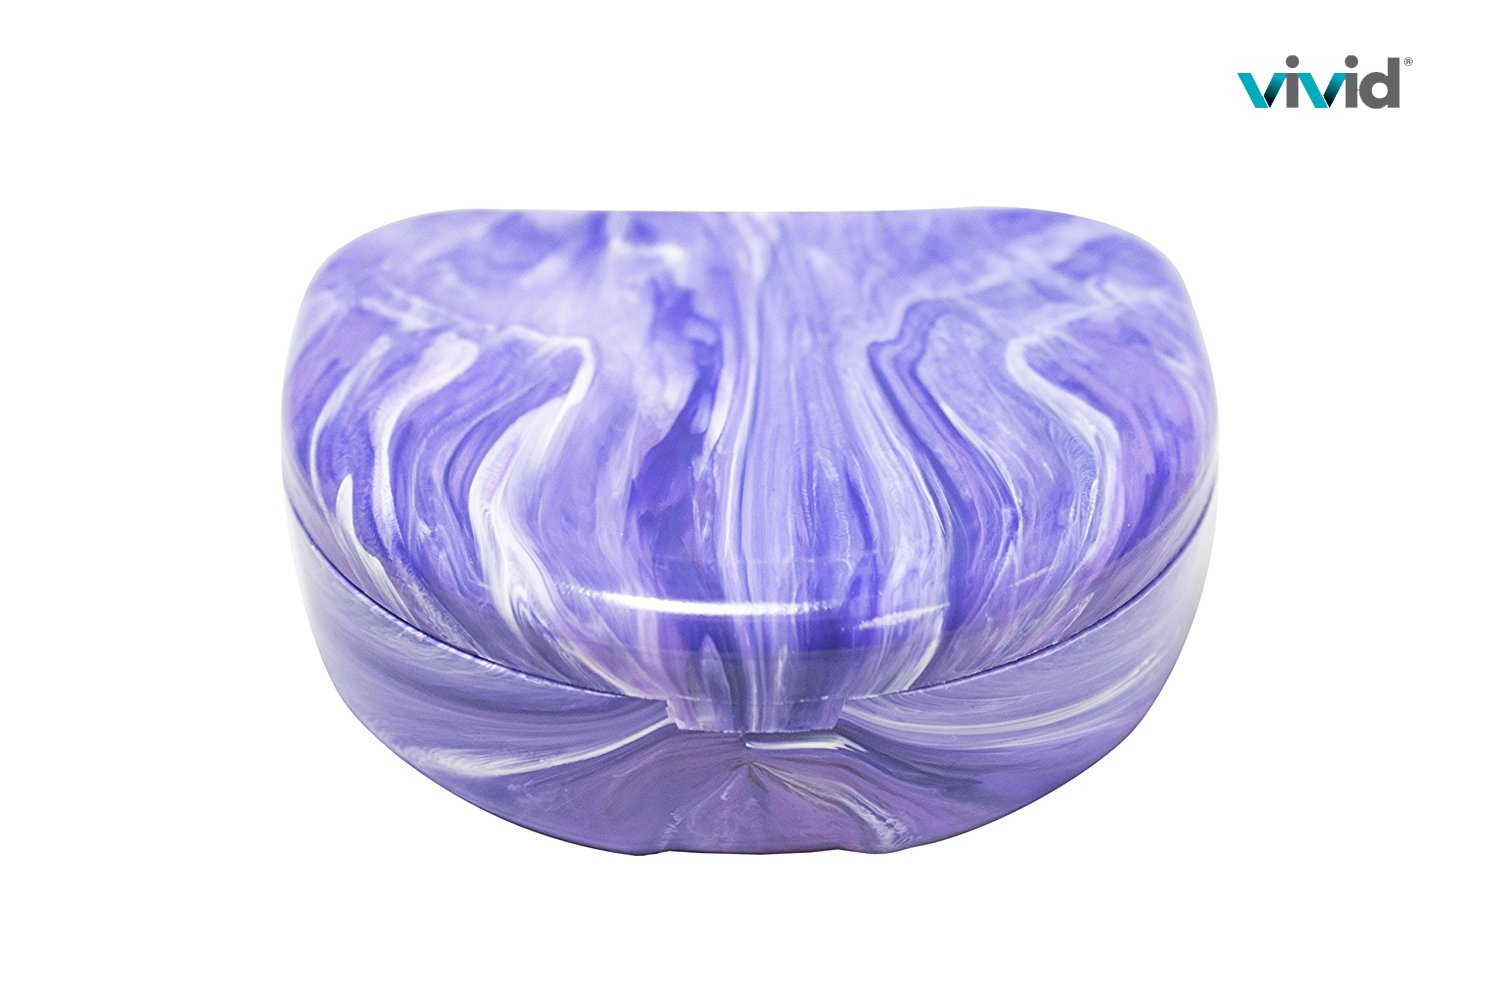 by Vivid Marble Color Mouthguard Case for Retainer and Dentures Portable Denture Cases Orthodontic Retainer Case With Hinged Lid Snaps Lavender Pearson Dental Supply